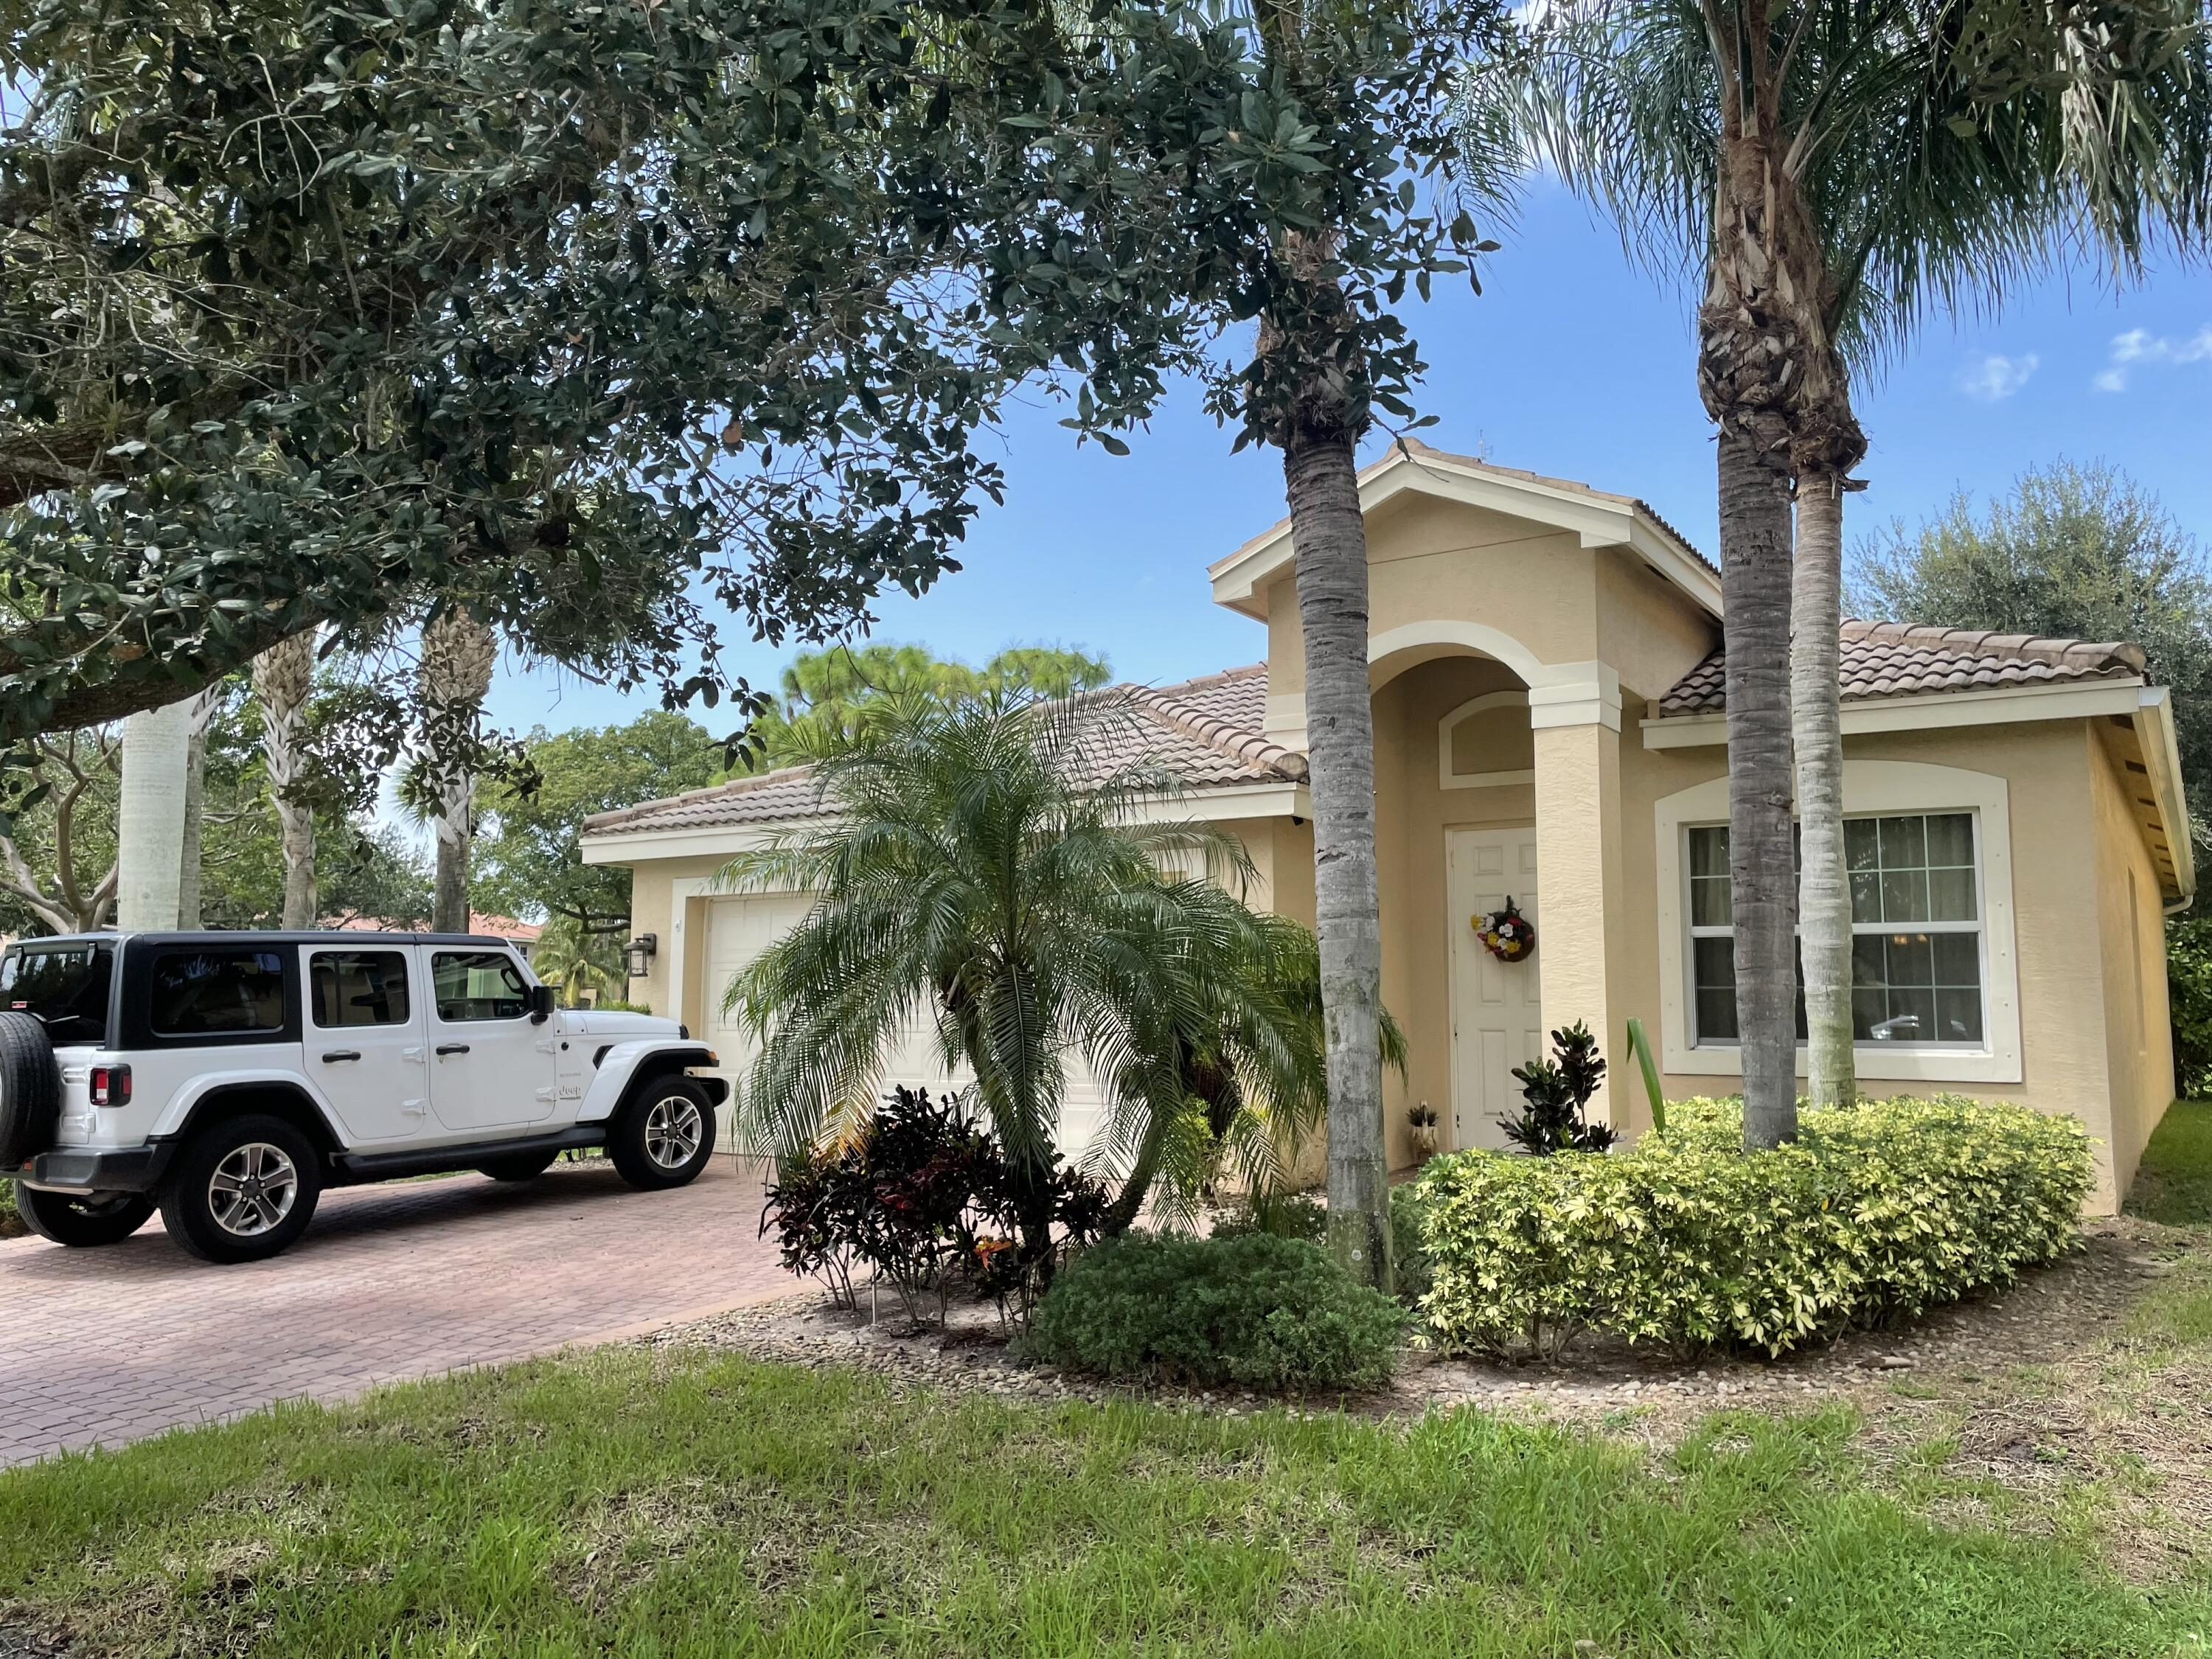 7725  Jewelwood Drive  For Sale 10744610, FL